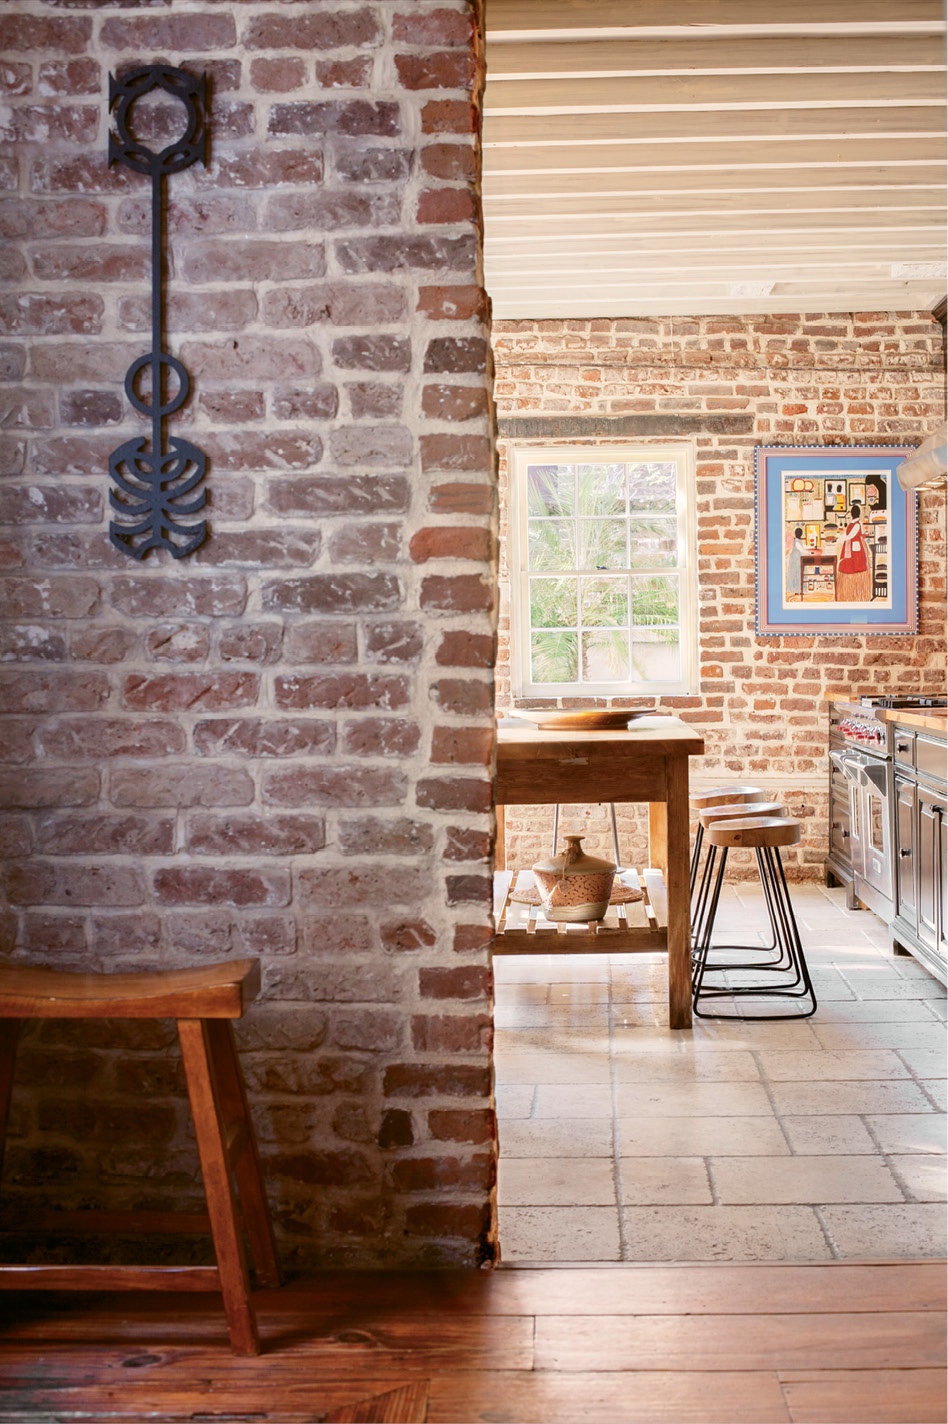 Now We're Cooking: Like many historical homes, the kitchen was originally separate from the main residence; a previous owner linked the two structures and added 21st-century comforts.